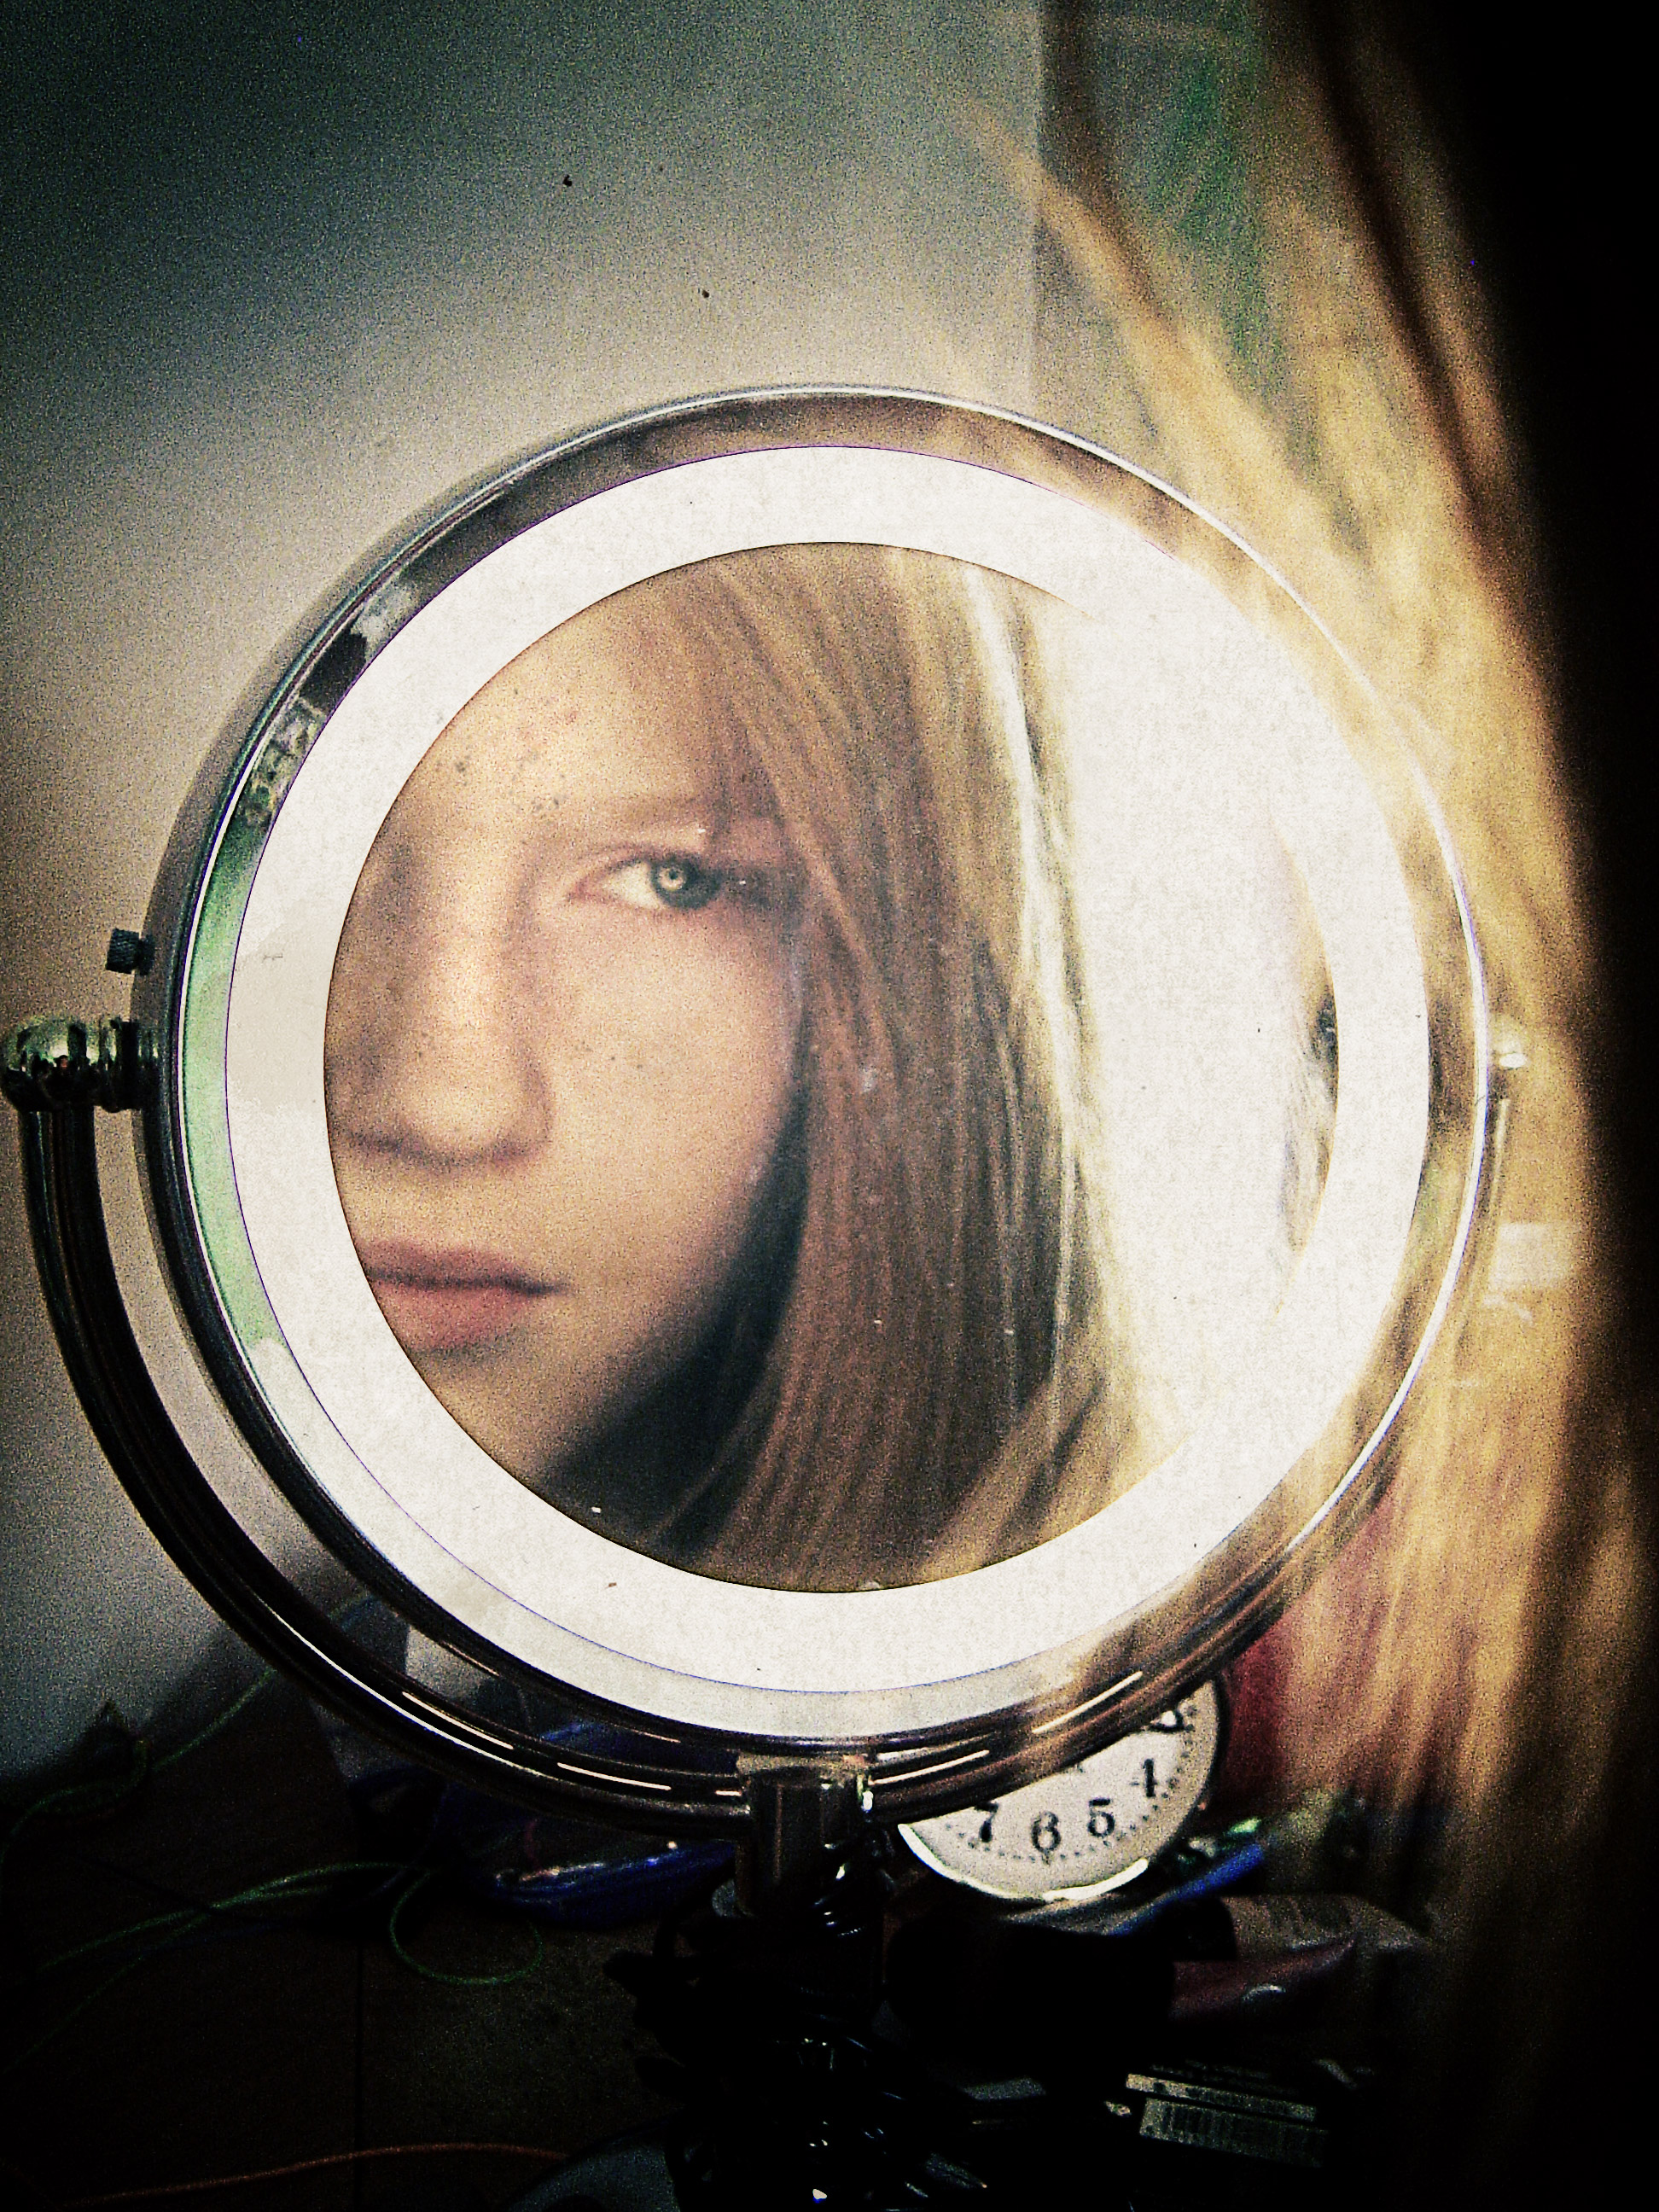 Girl in mirror 1 of 2 by everlite on deviantart for Looking mirror